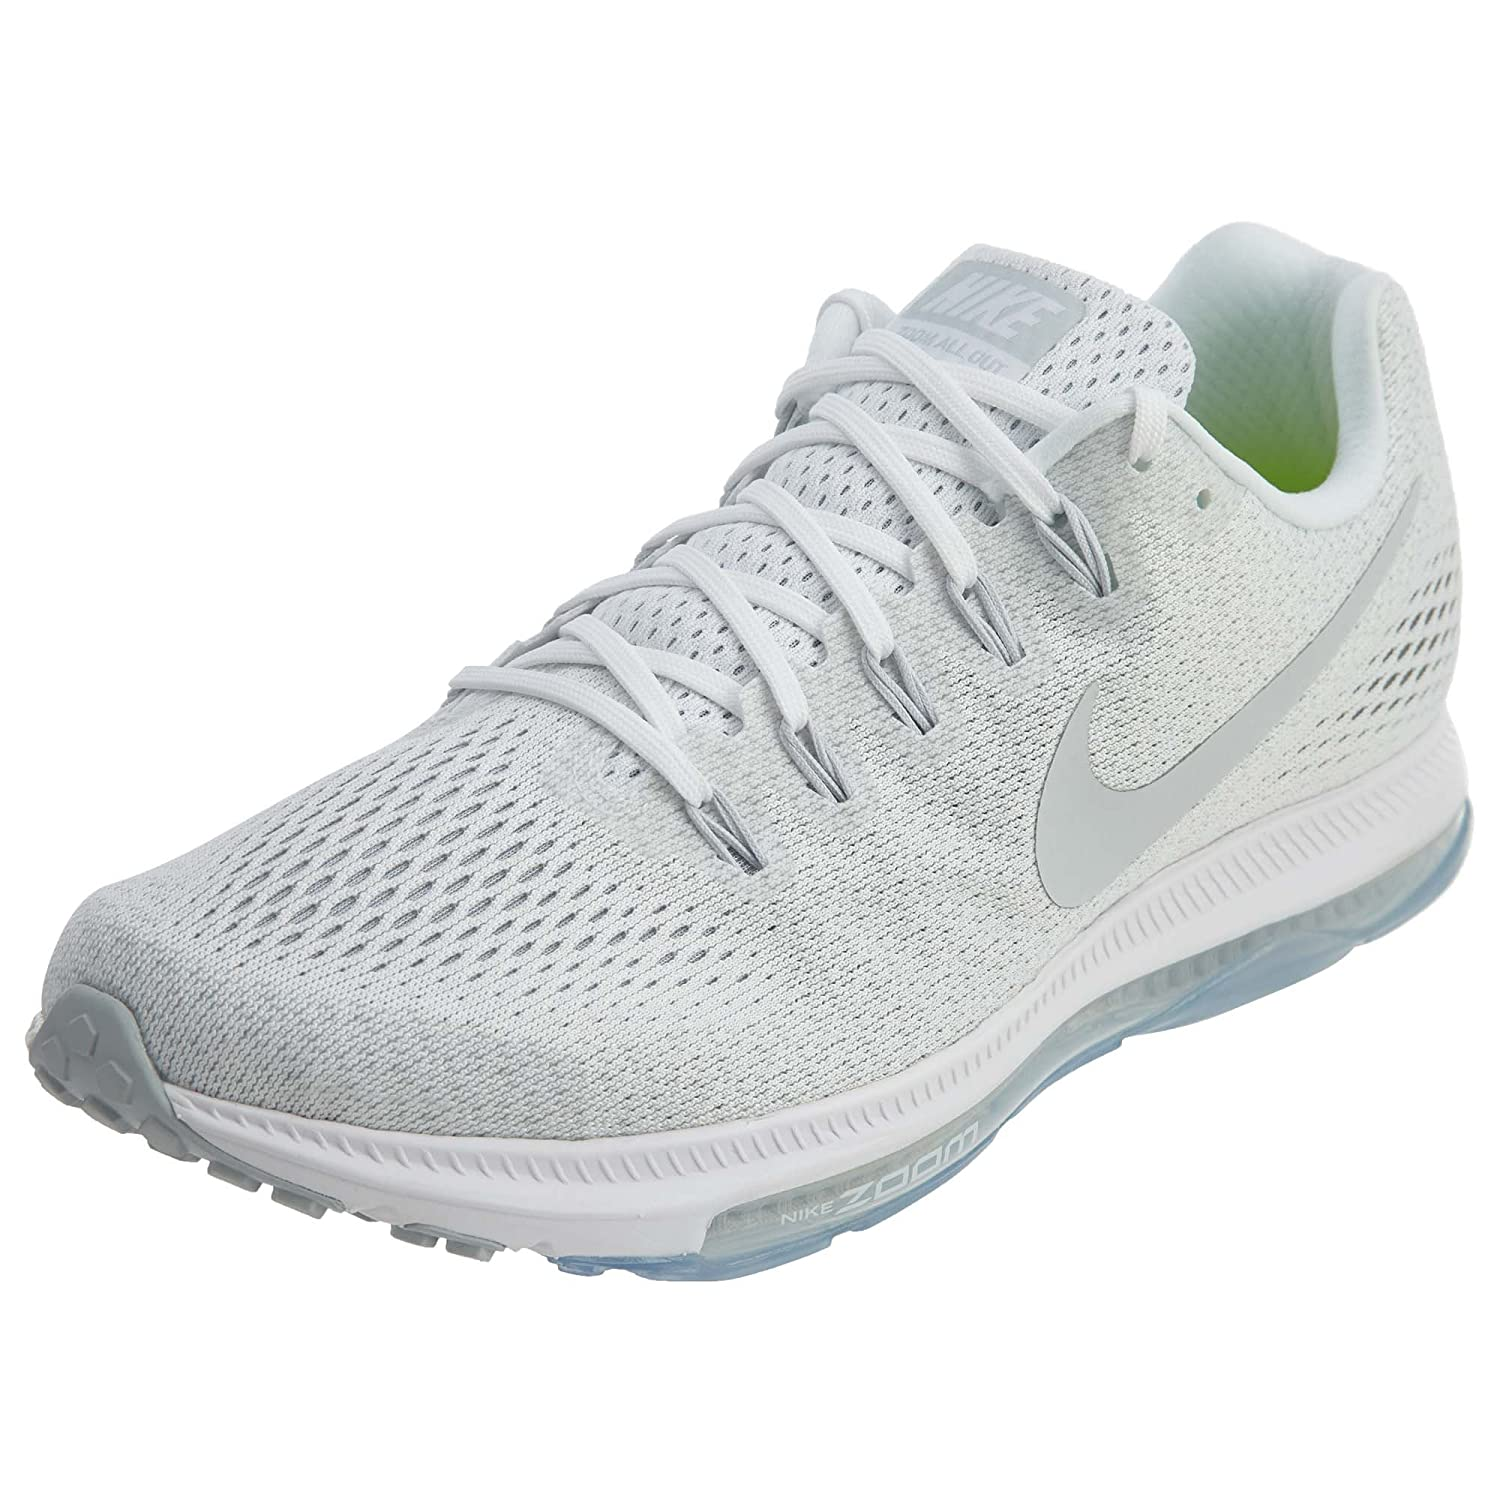 NIKE Zoom All Out Low Men's Running Sneaker B0711LFDFC 10.5 D(M) US|White/Pure Platinum